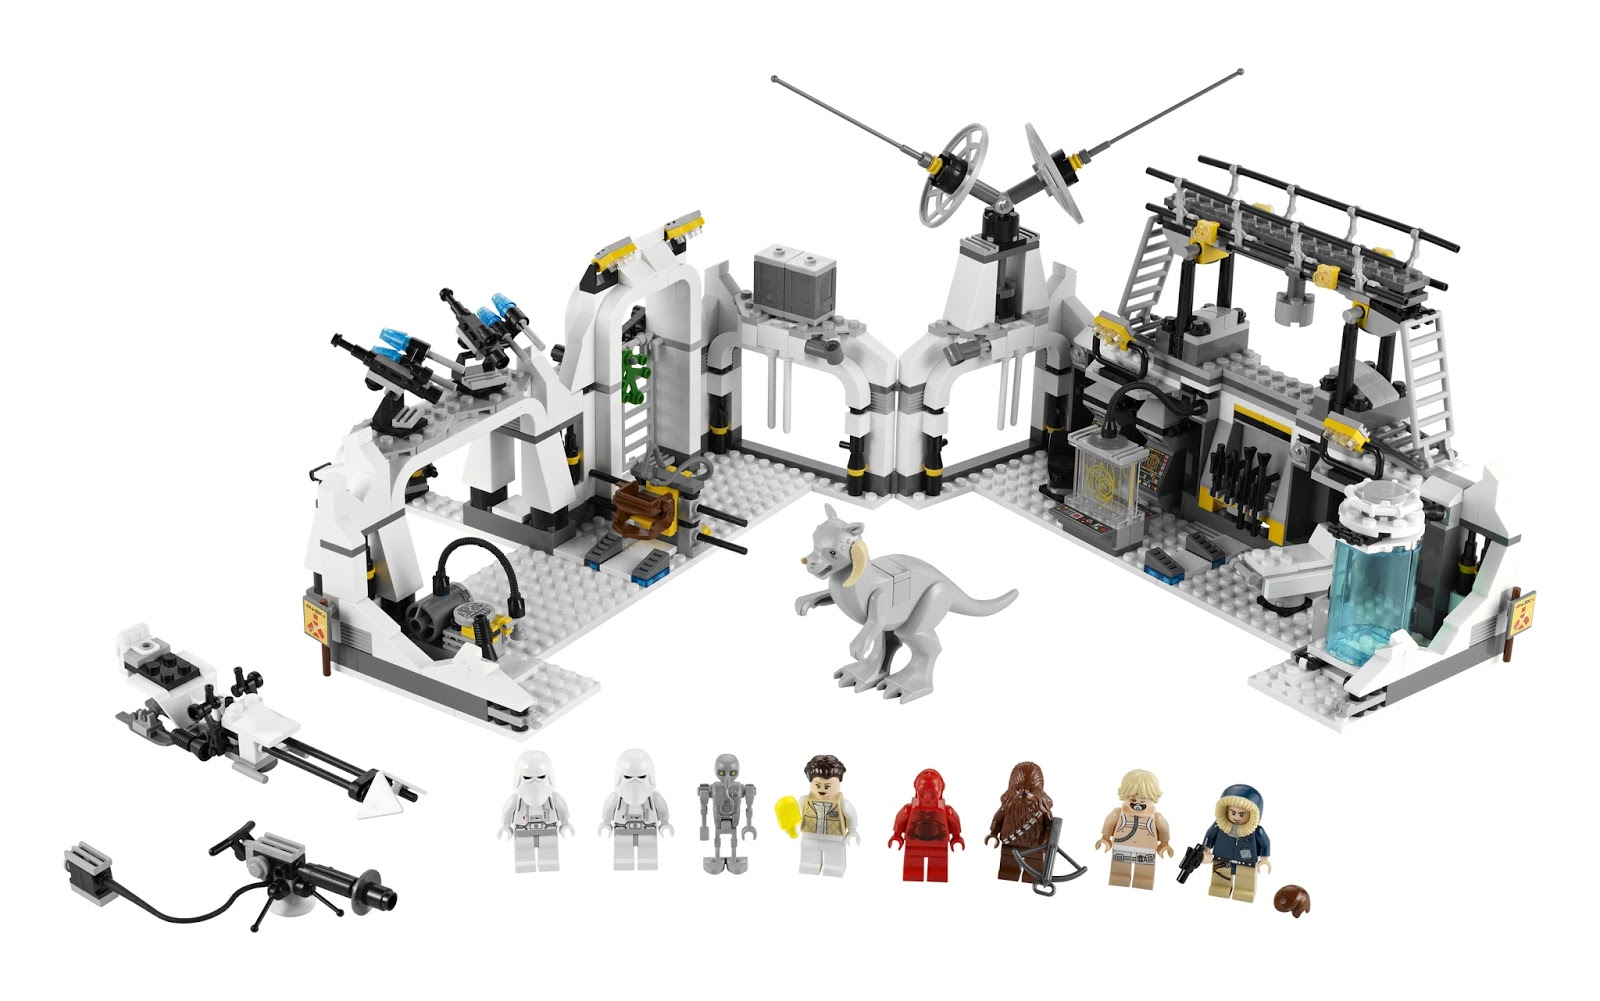 Star Wars Lego Toys : All about bricks quick reaction lego star wars assault